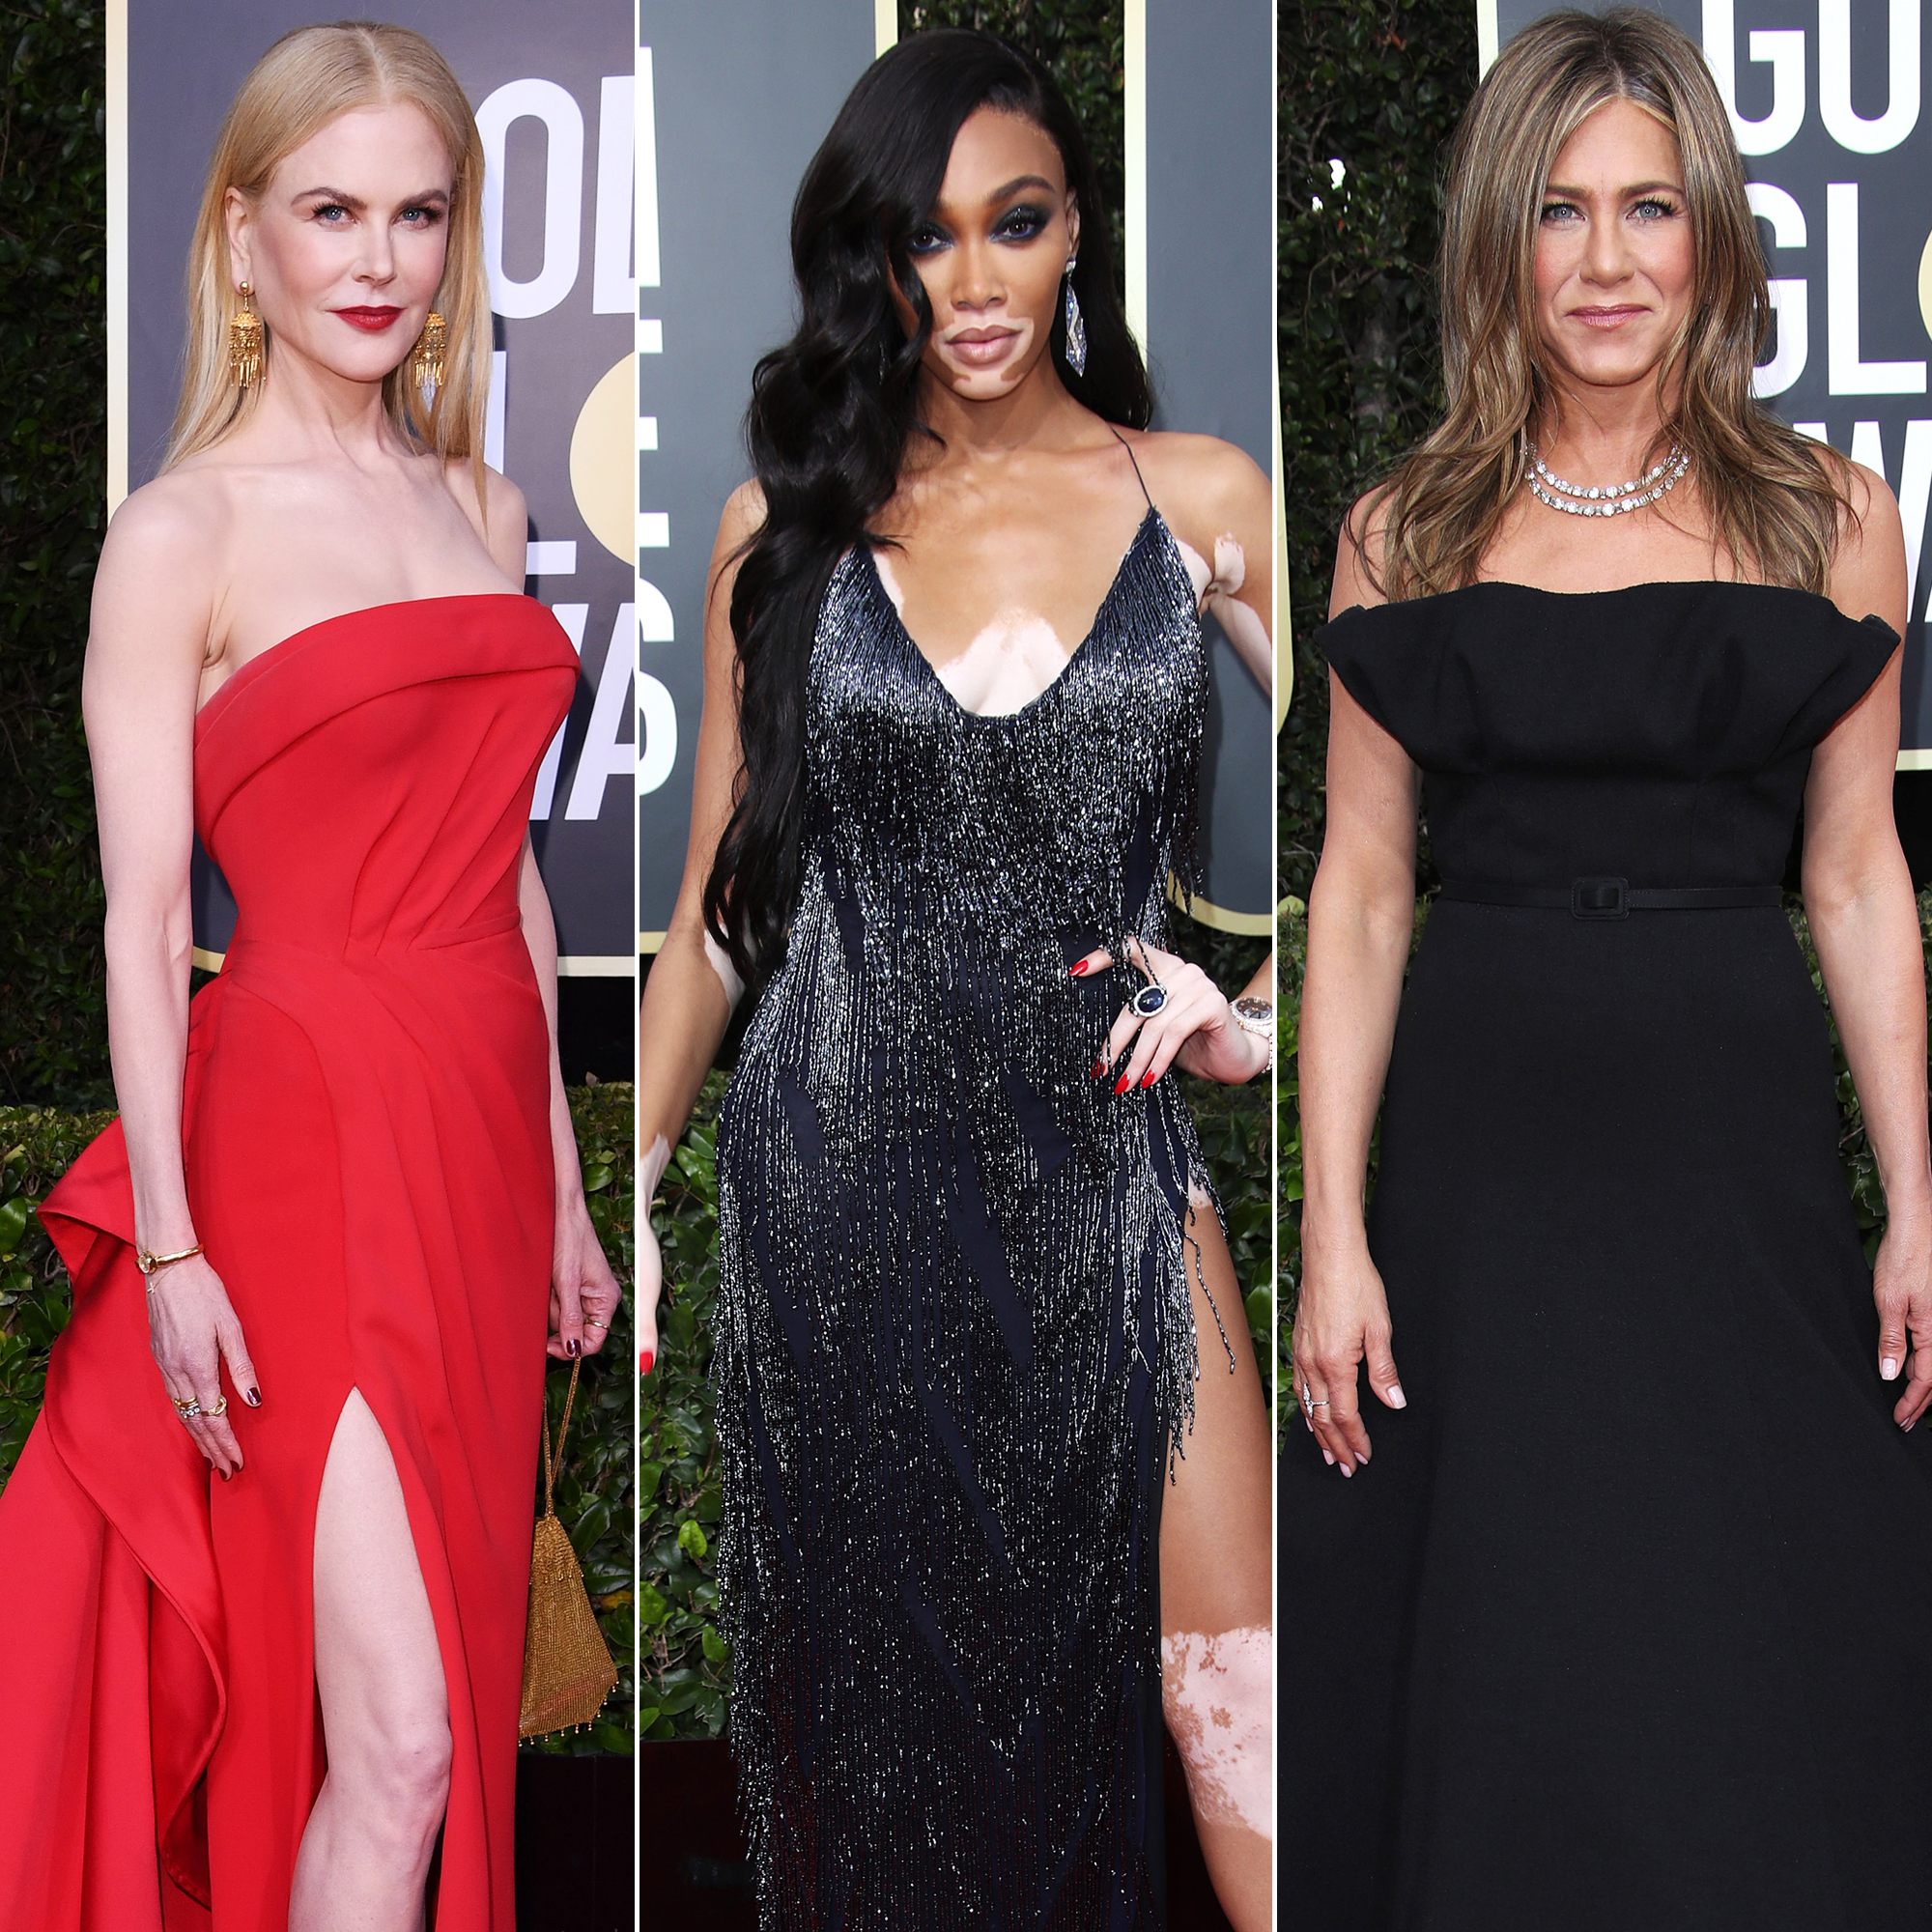 Golden Globes 5 Red Carpet Fashion: See Celeb Dresses, Gowns